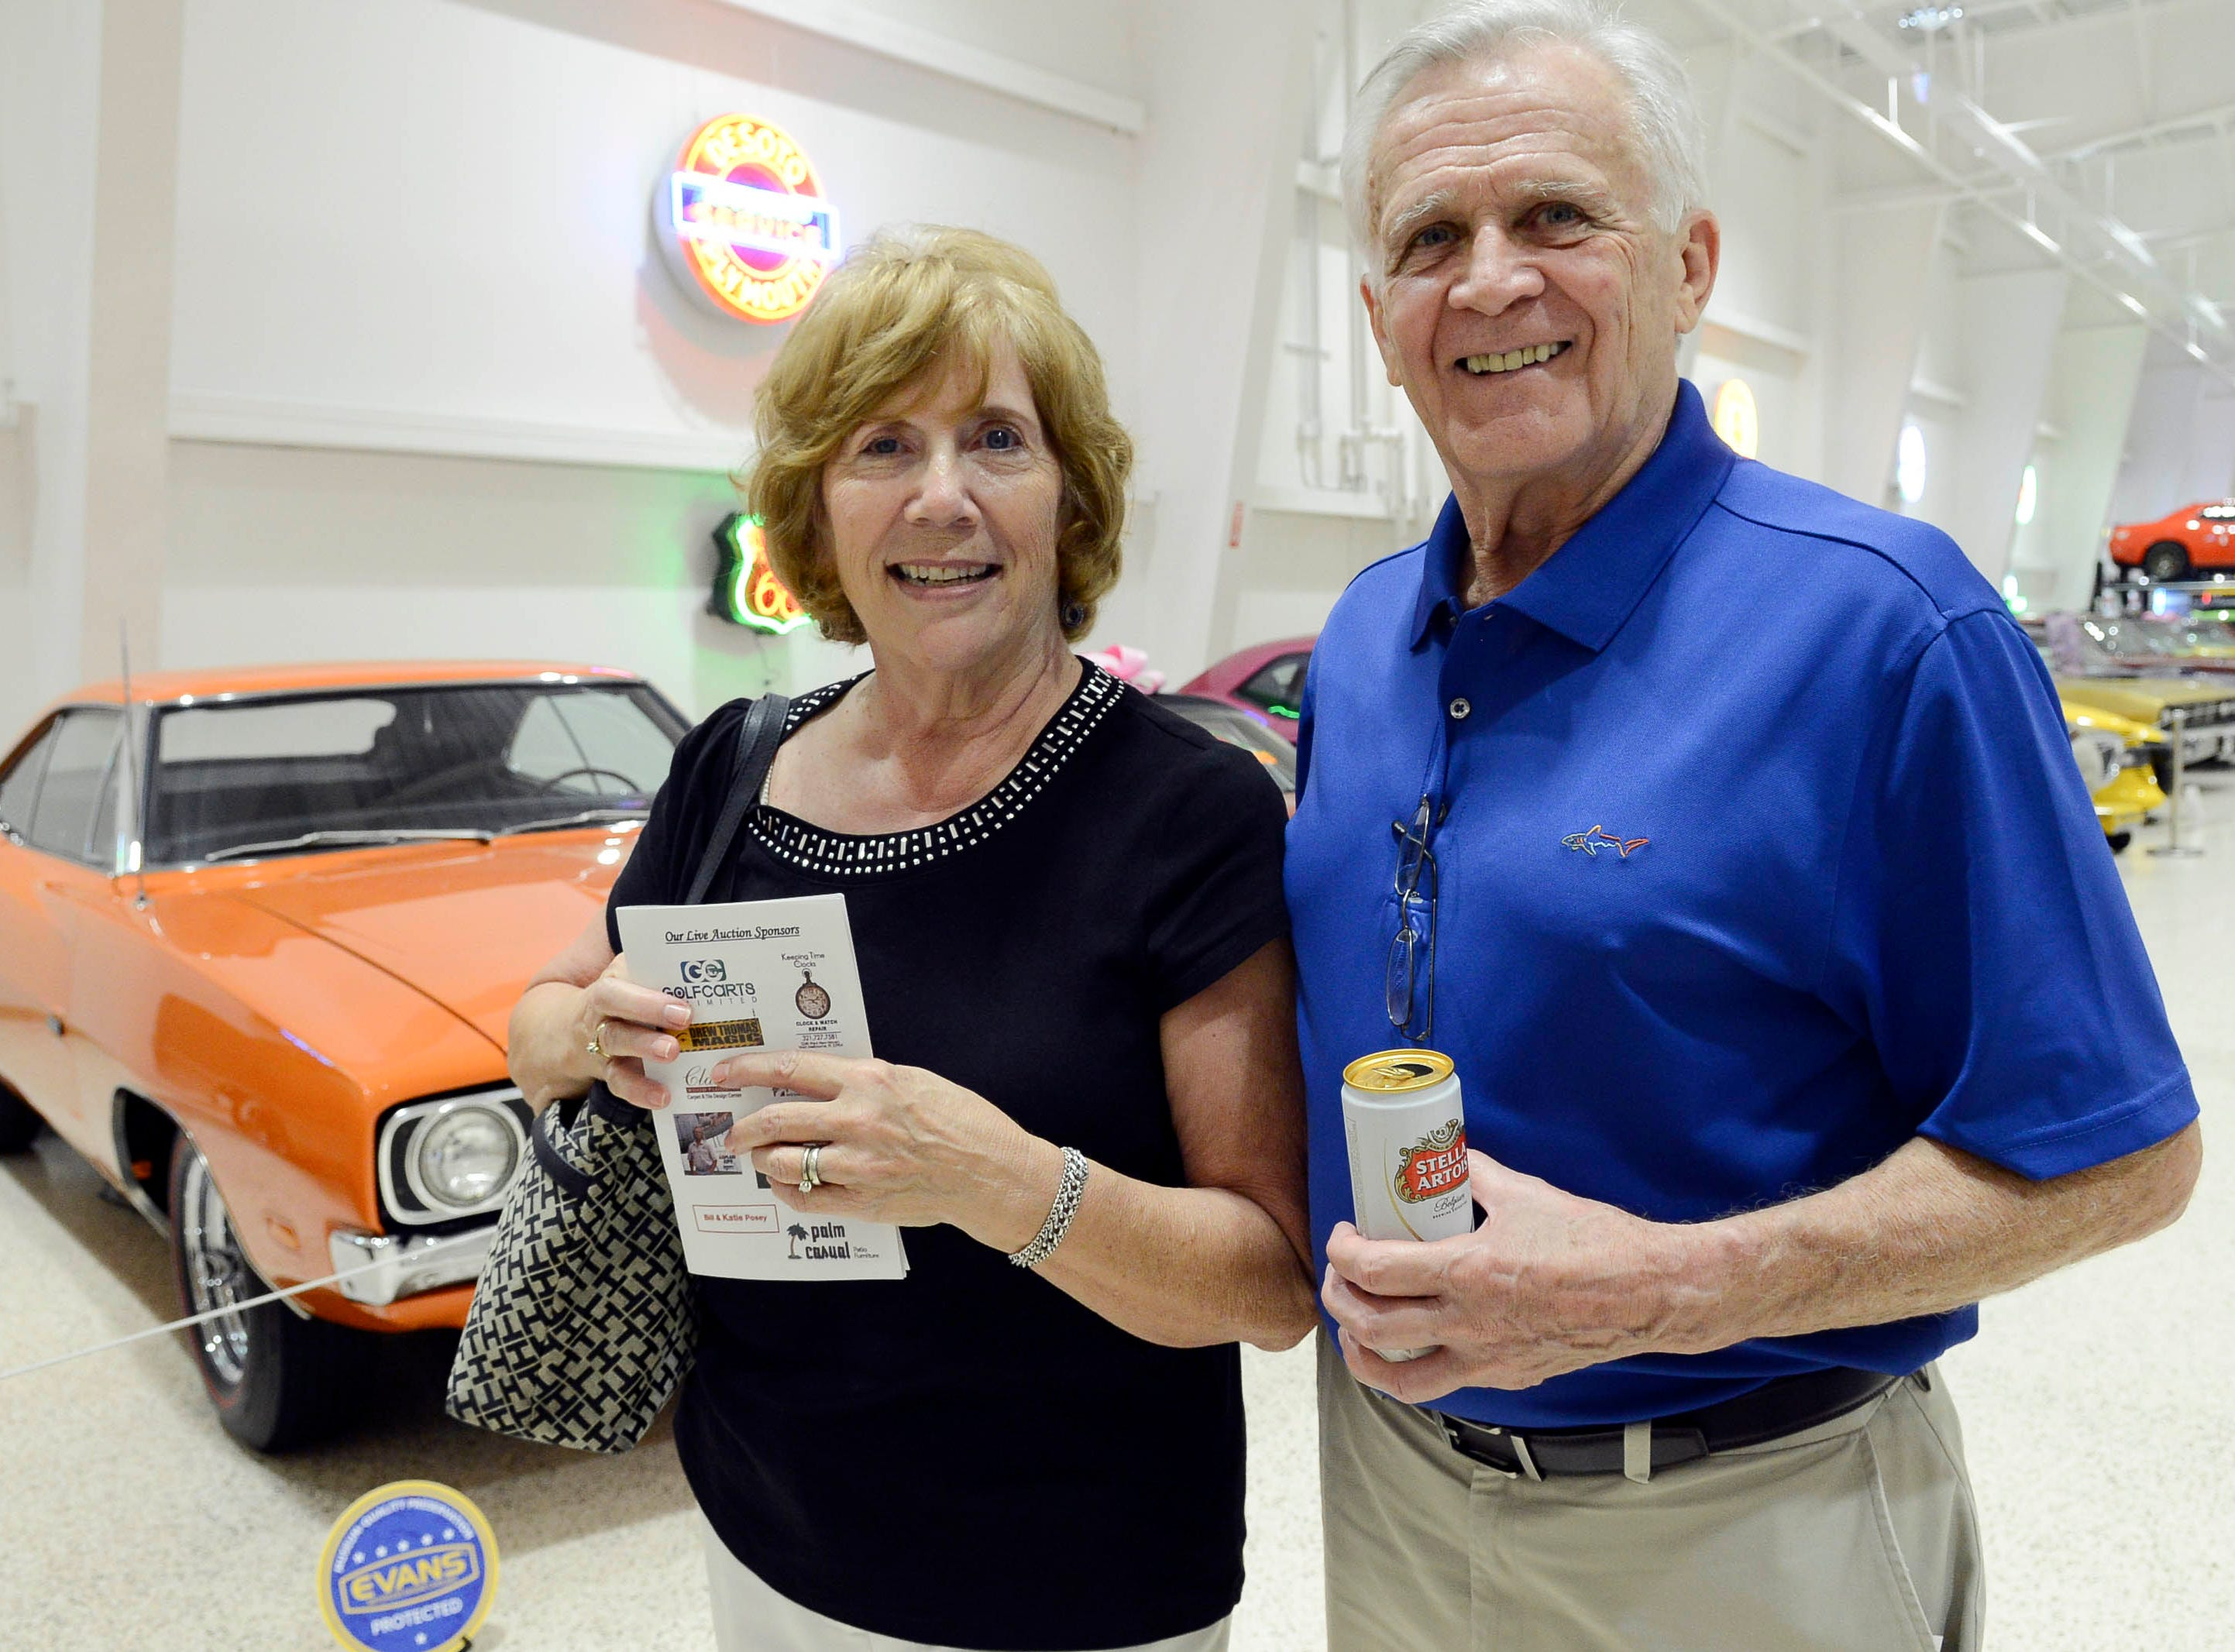 Carol and Herb McElrath get their picture taken during the Stars and Stripes fundraiser at American Muscle Car Museum. The event was a fundraiser for Space Coast Honor Flight.